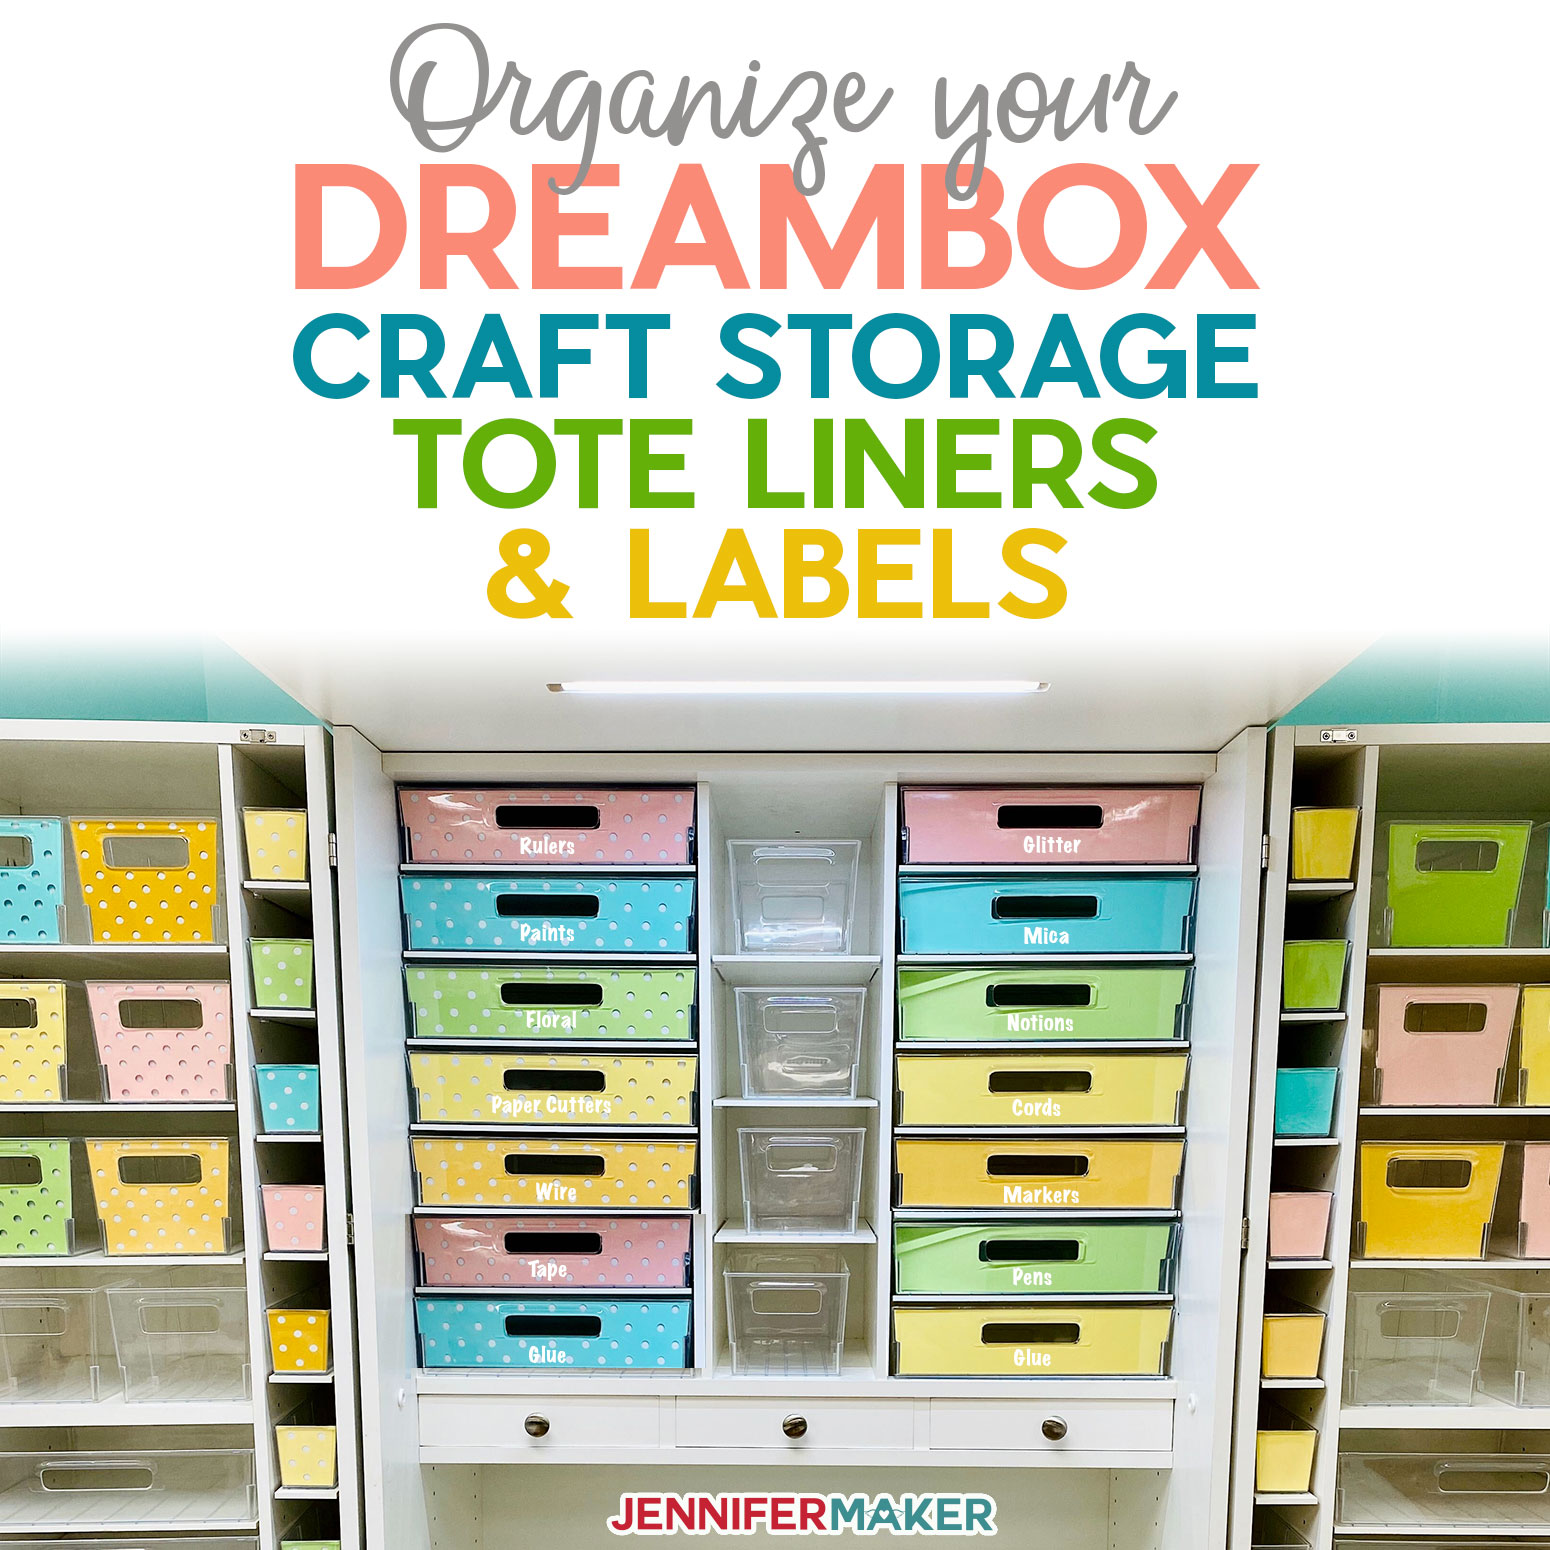 DreamBox Craft Storage Tote Liners & Labels